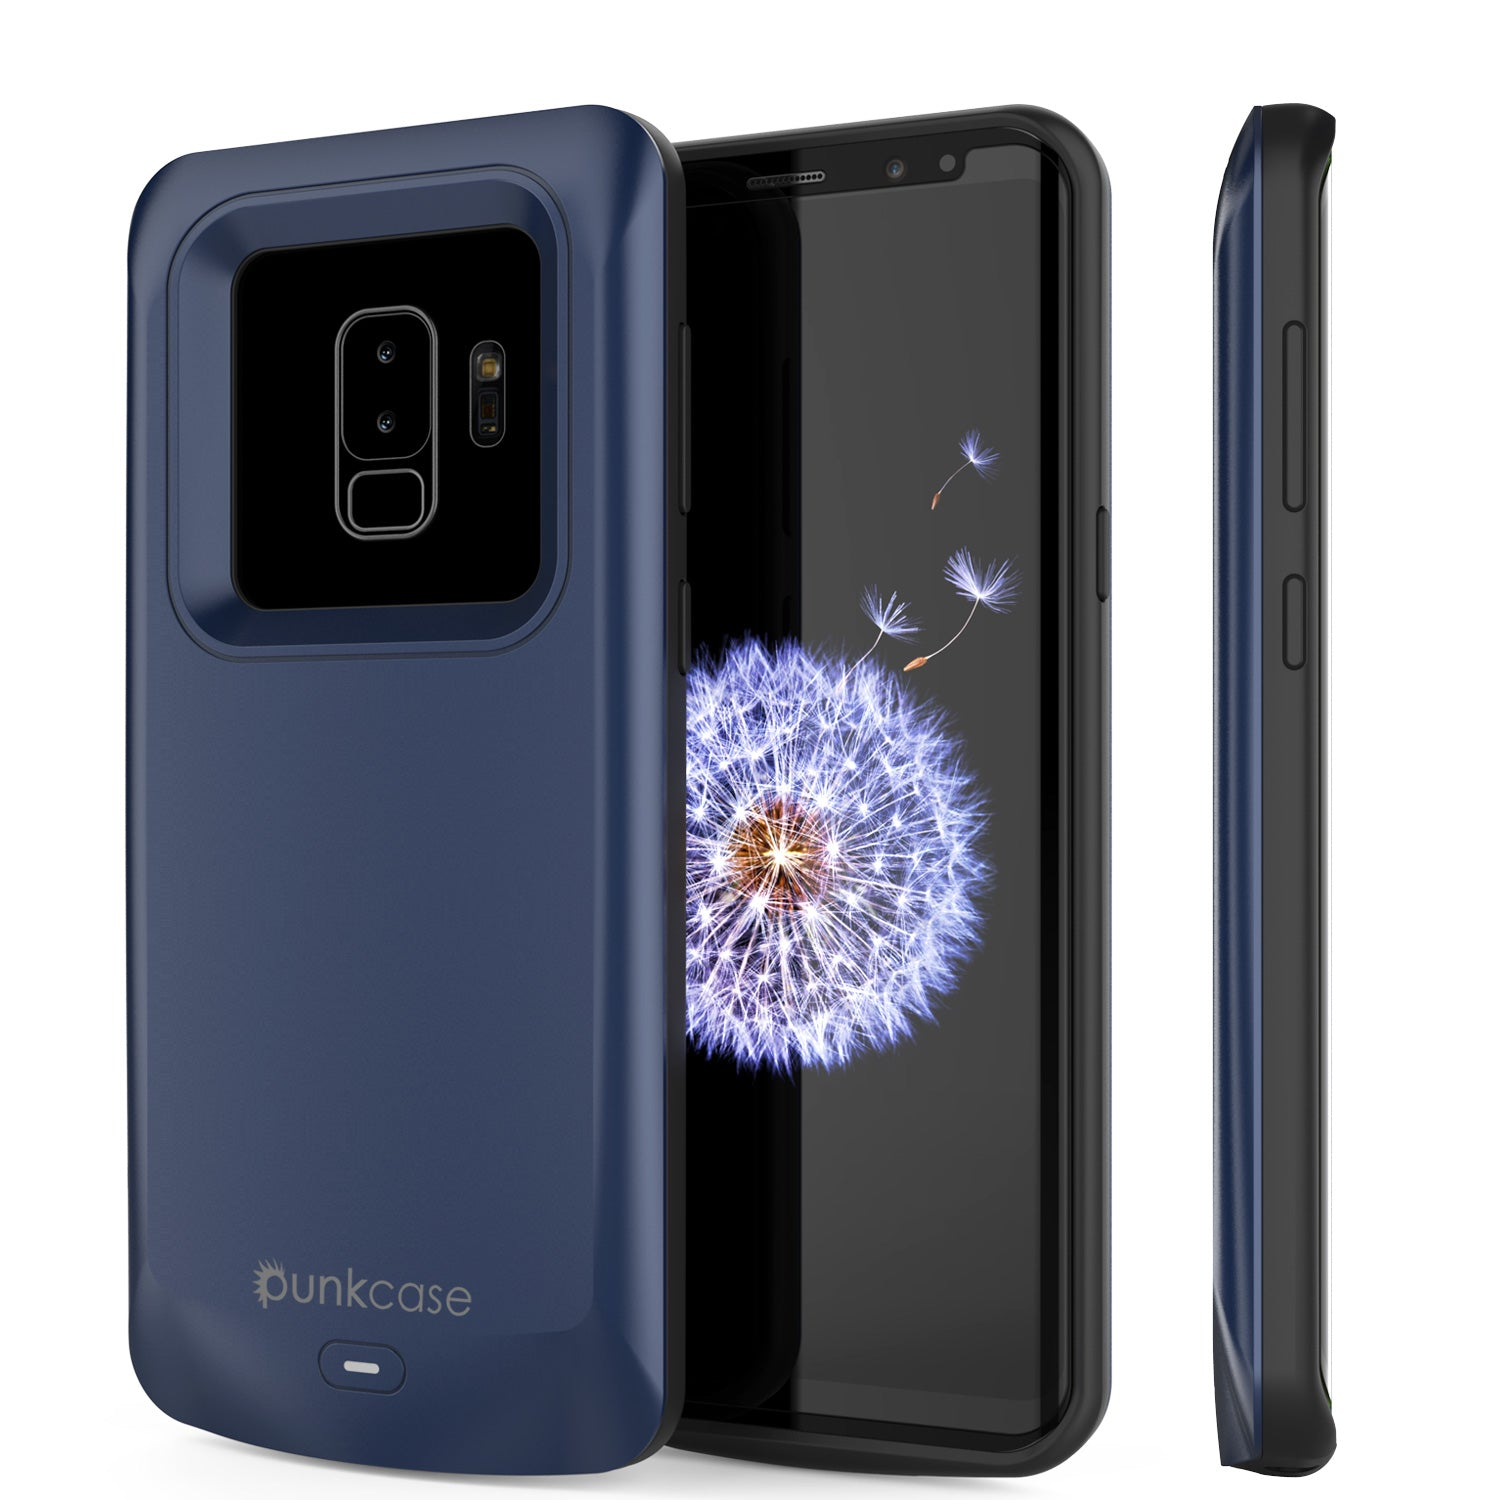 Galaxy S9 PLUS Battery Case, PunkJuice 5000mAH Fast Charging Power Bank Case [Navy]